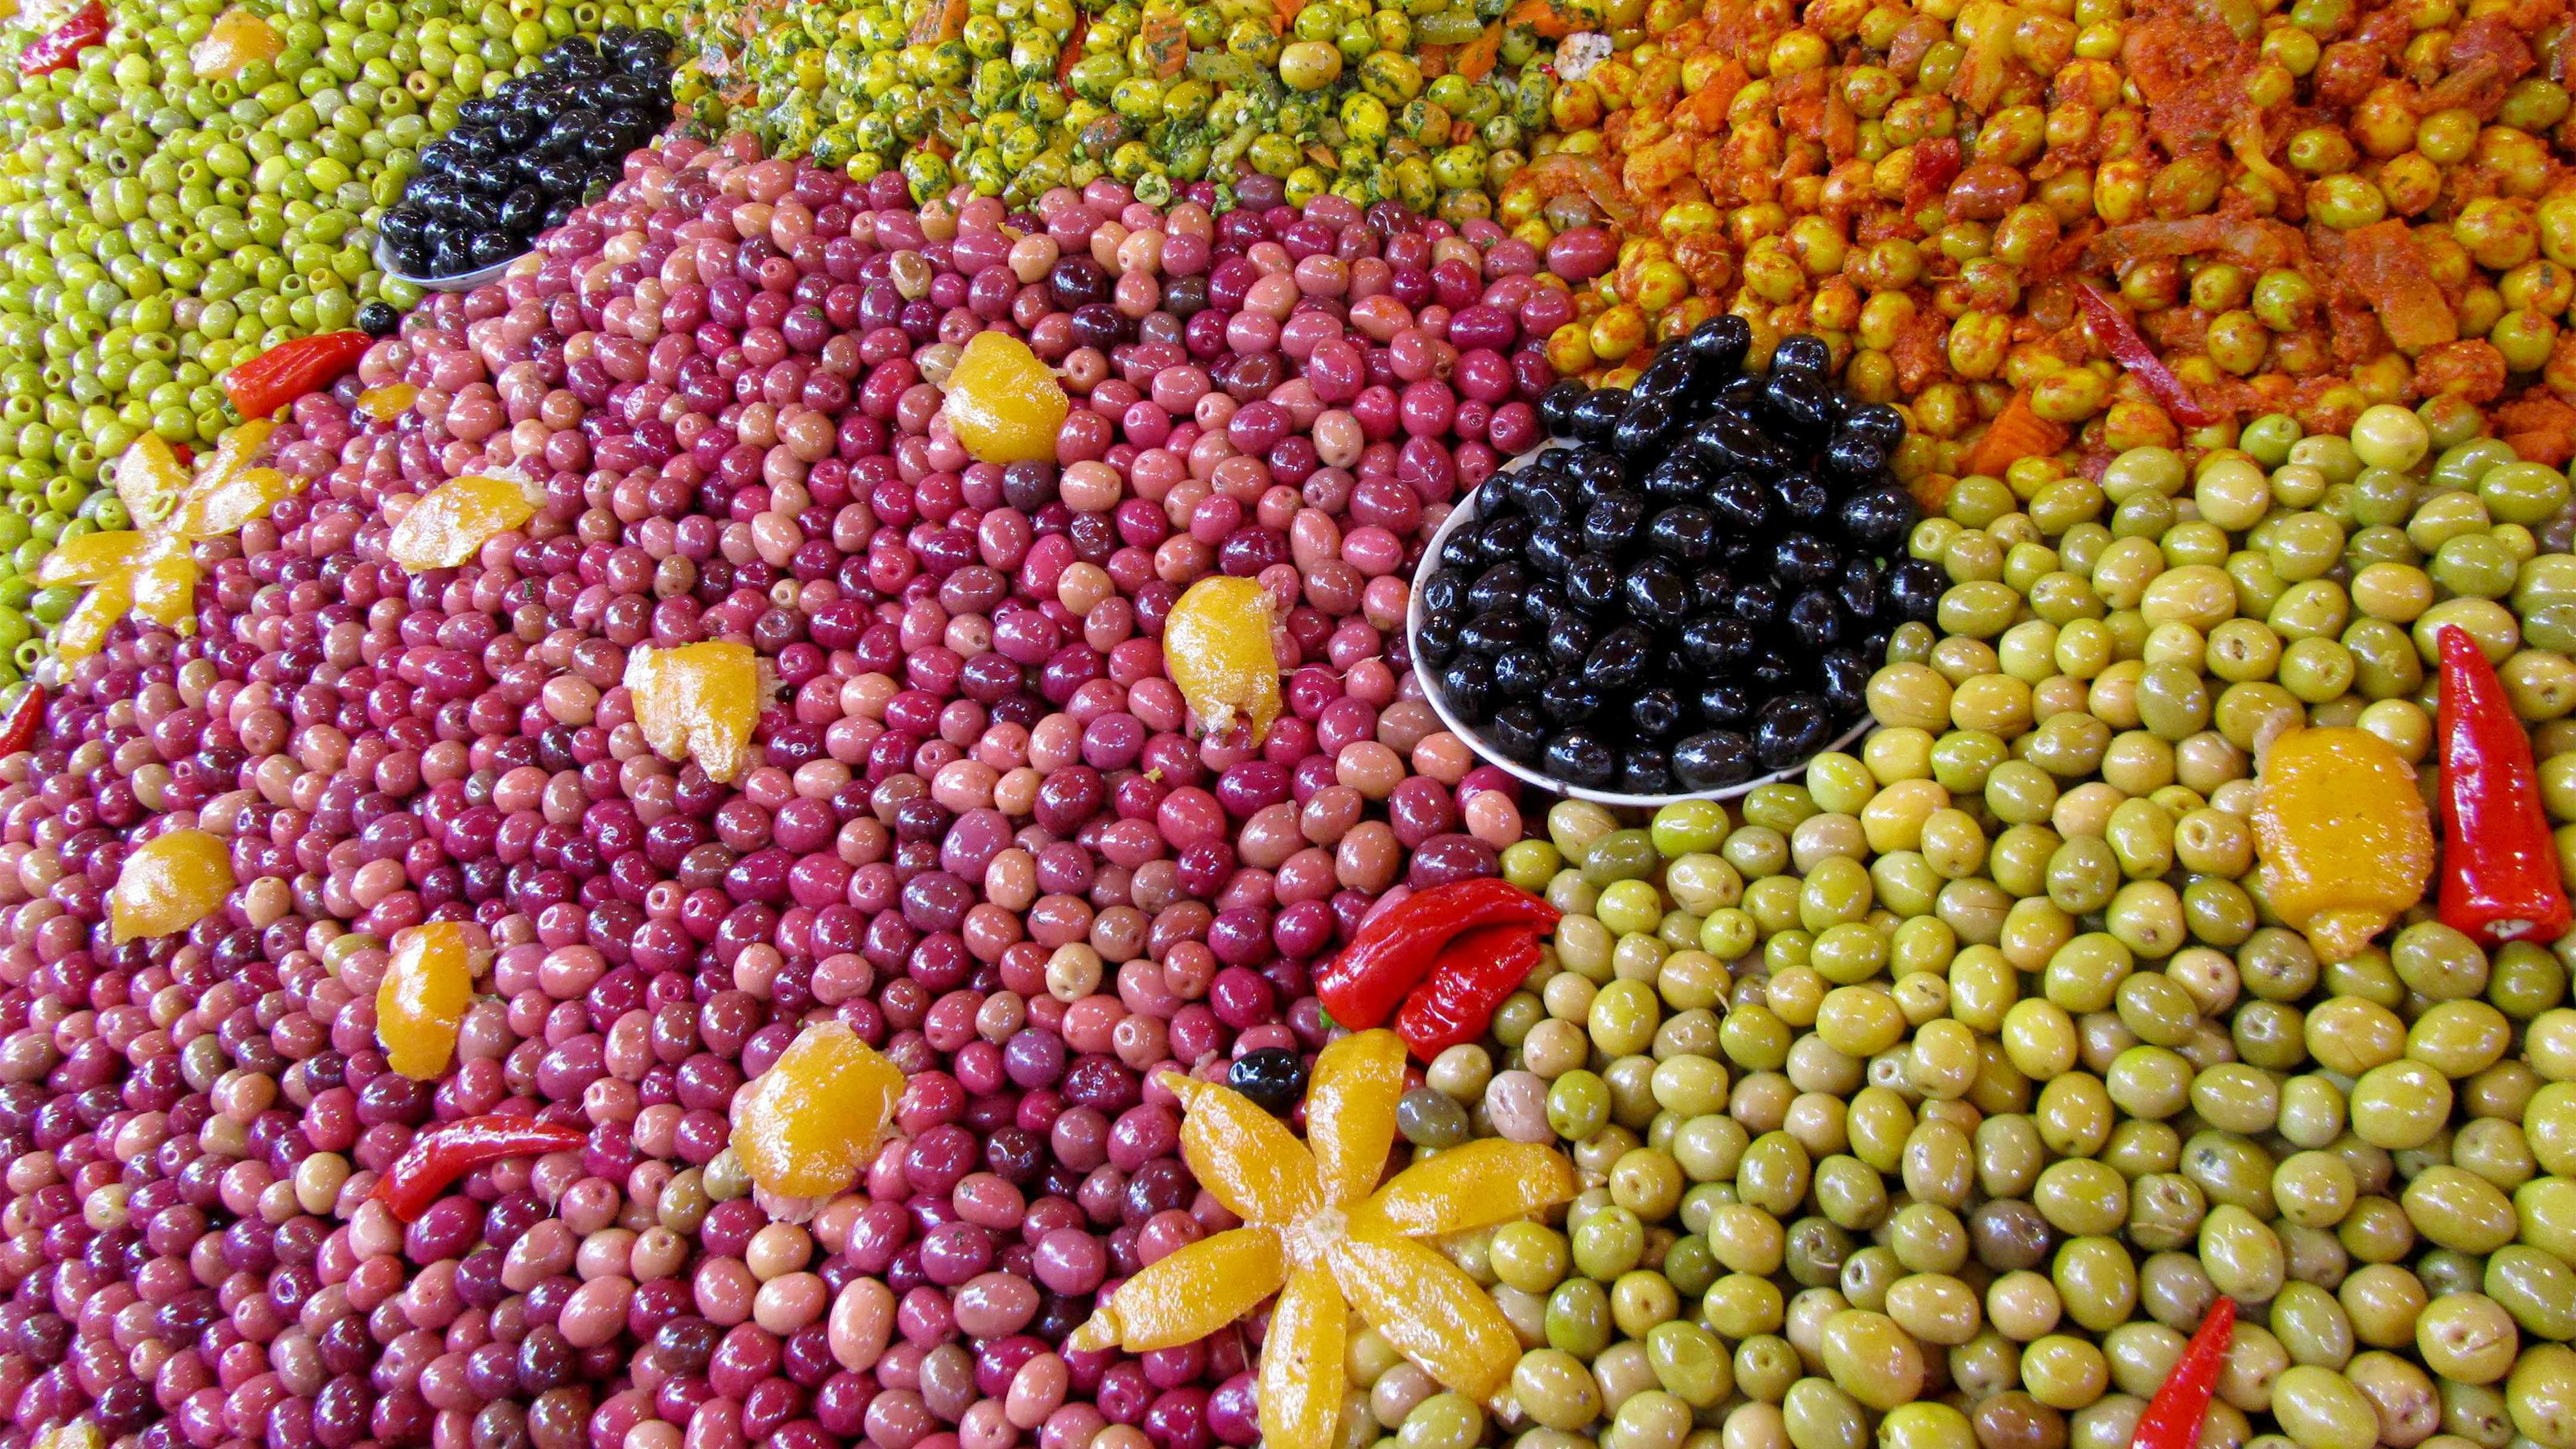 Array of olives on display at a market in Agadir